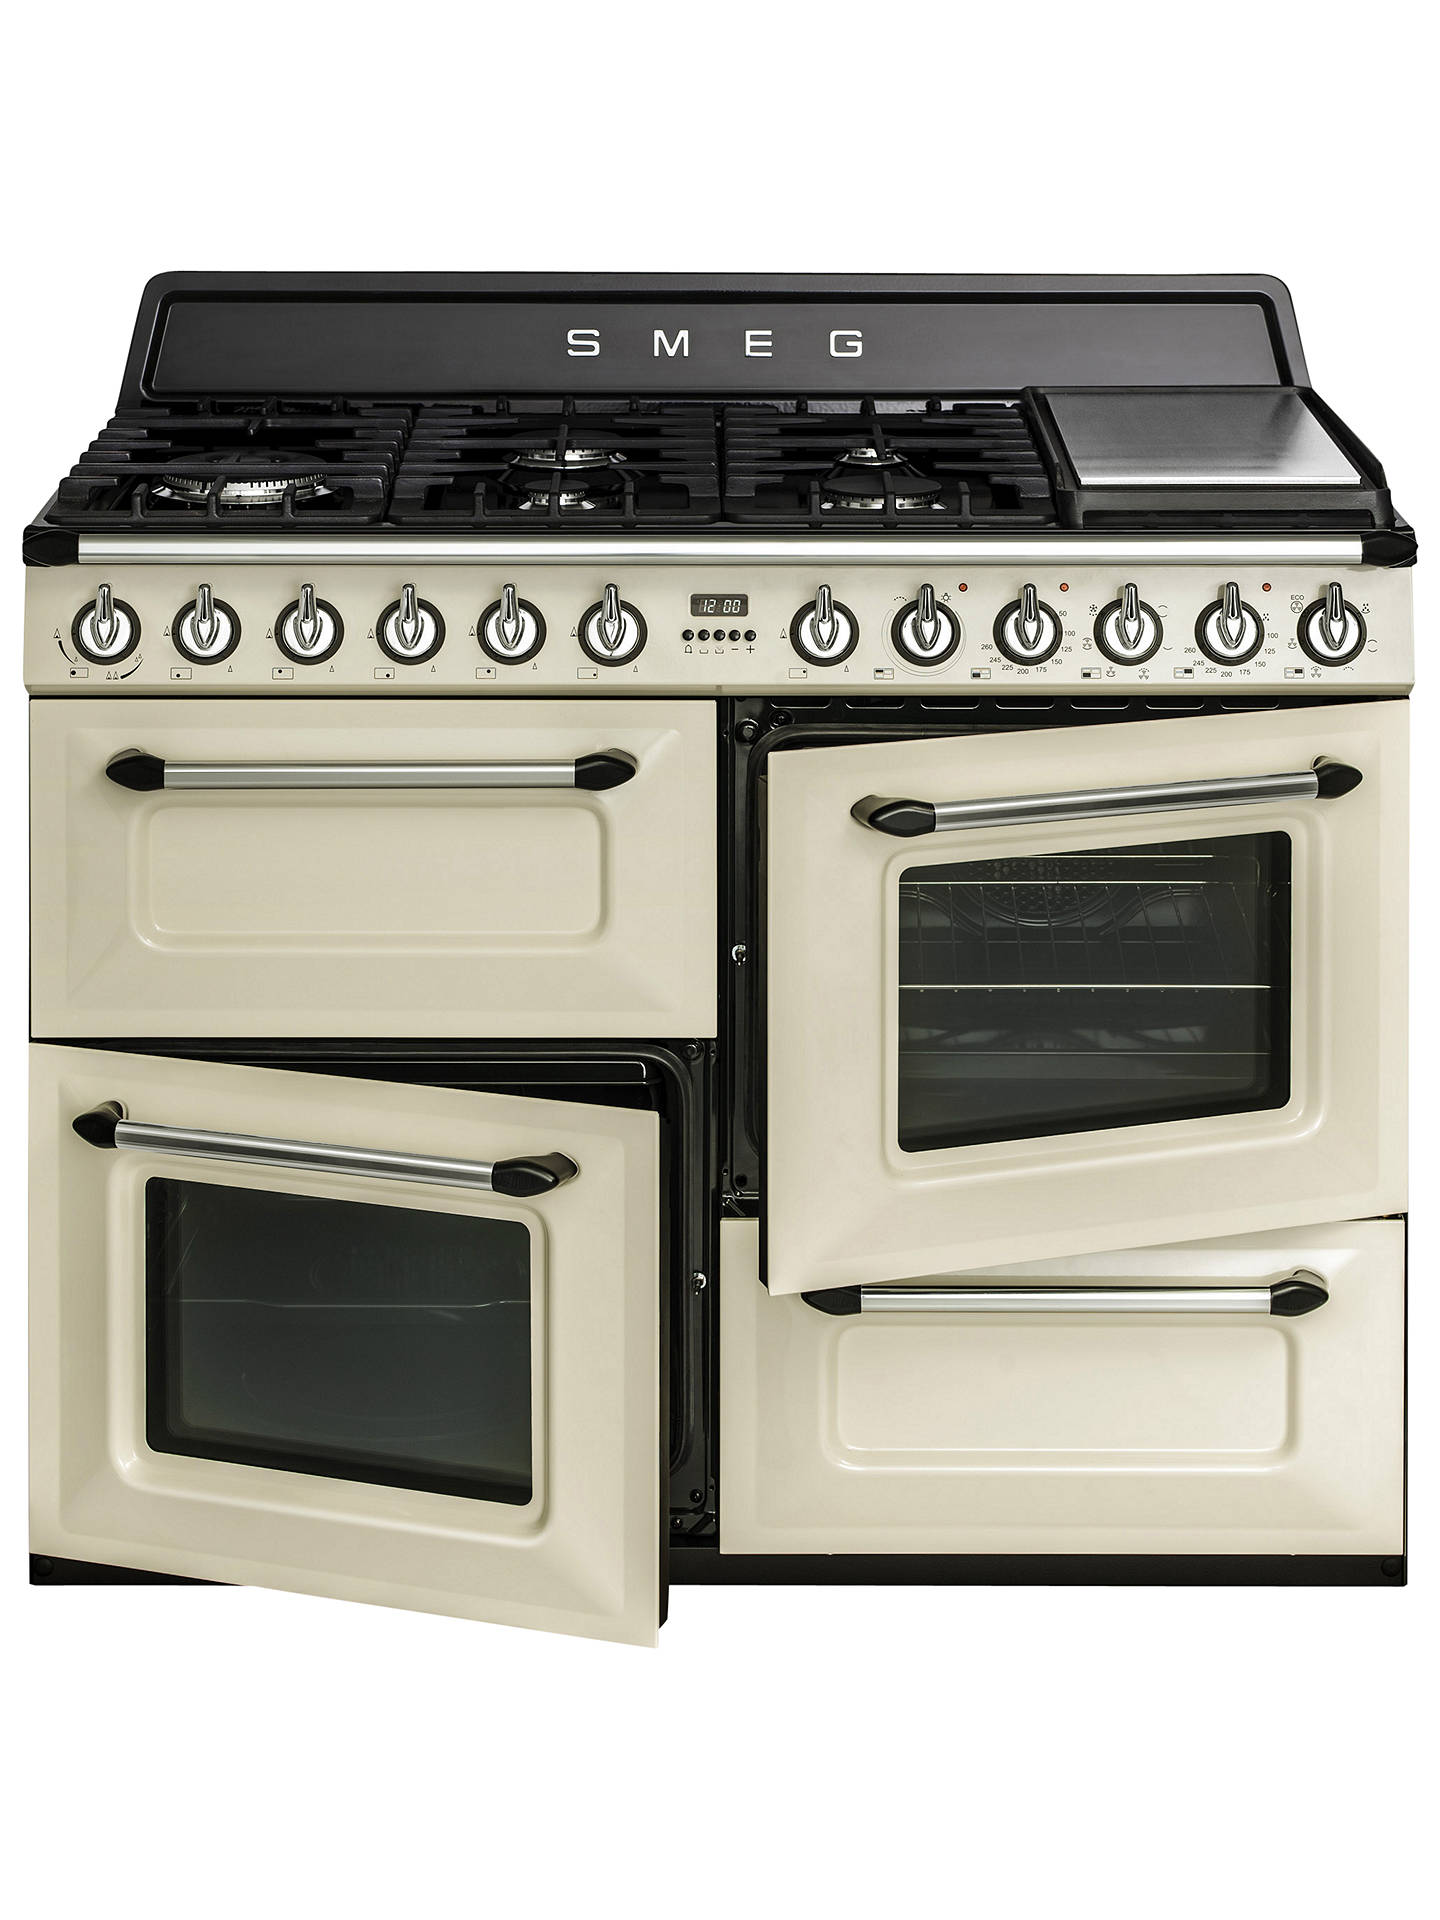 BuySmeg TR4110P1 Dual Fuel Range Cooker, Cream Online at johnlewis.com